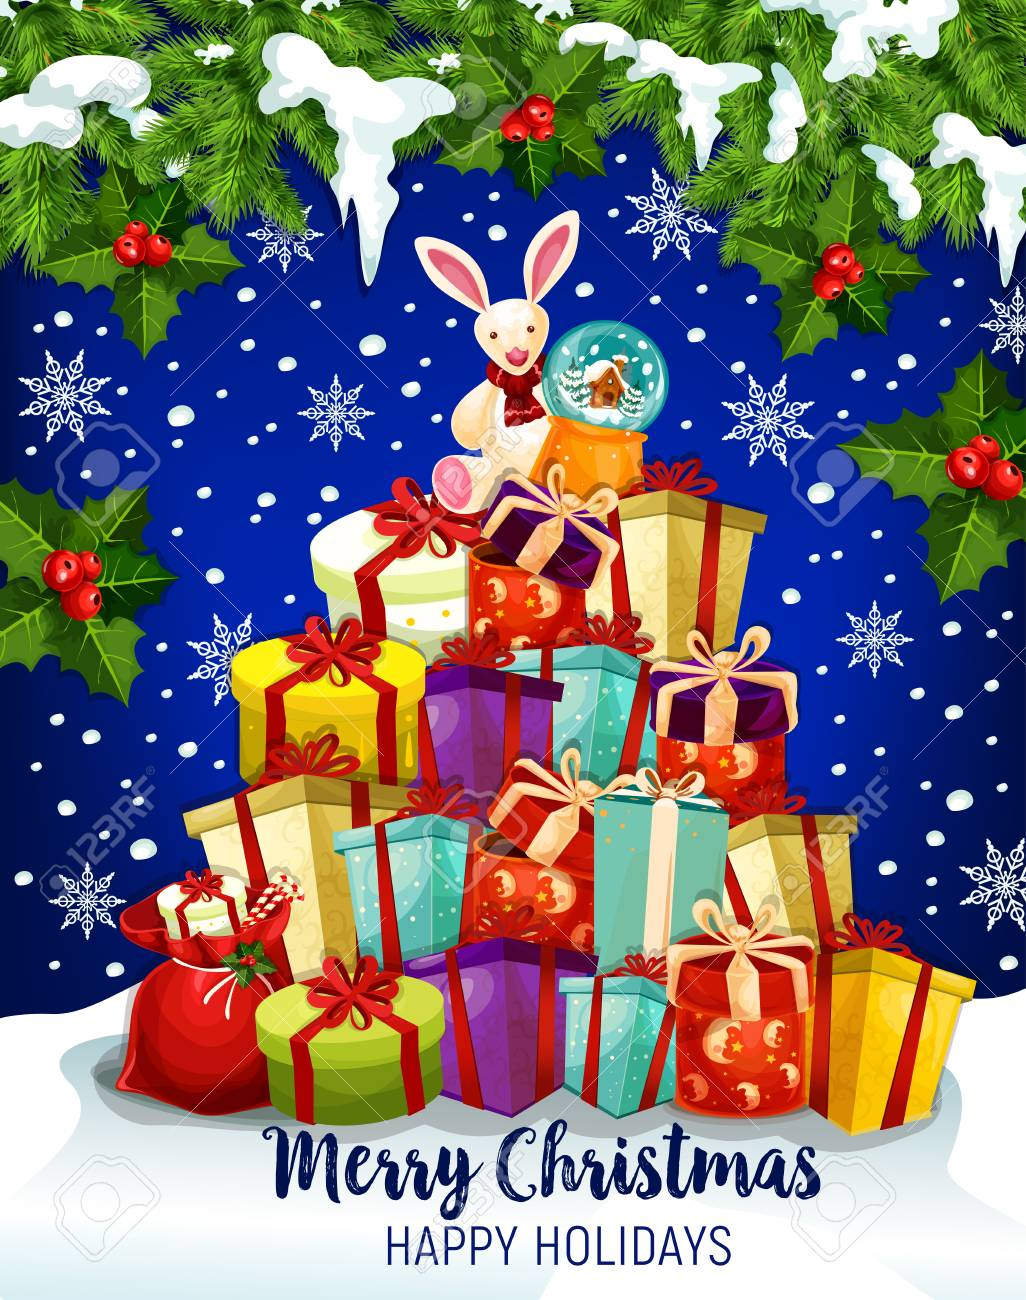 new year themes design christmas gift greeting card of winter holidays celebration pile of present boxes with ribbon and